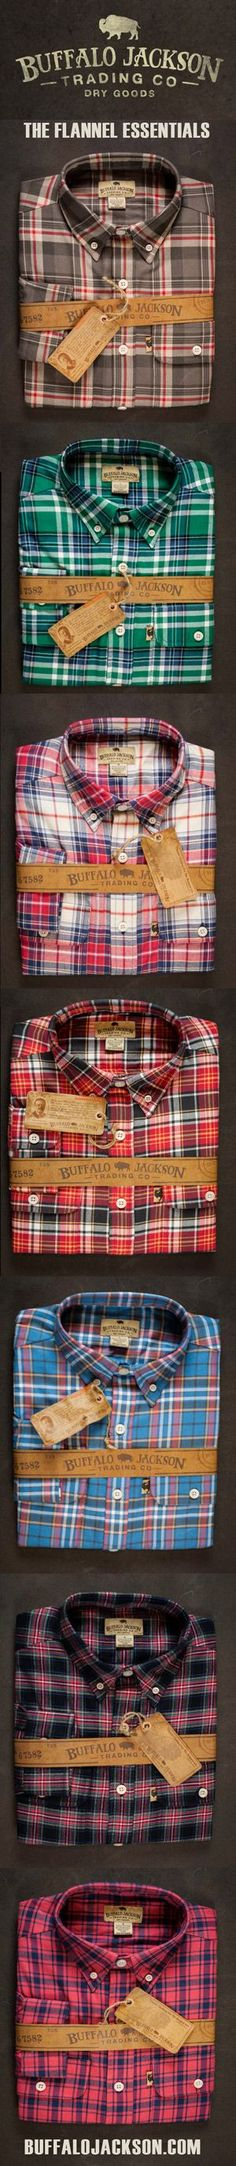 The Ultimate Flannel Collection. These men's flannel shirts are made of soft, sturdy, midweight flannel. This is the flannel shirt he wants to wear (and you want to see him in). Super popular gift for him this year.